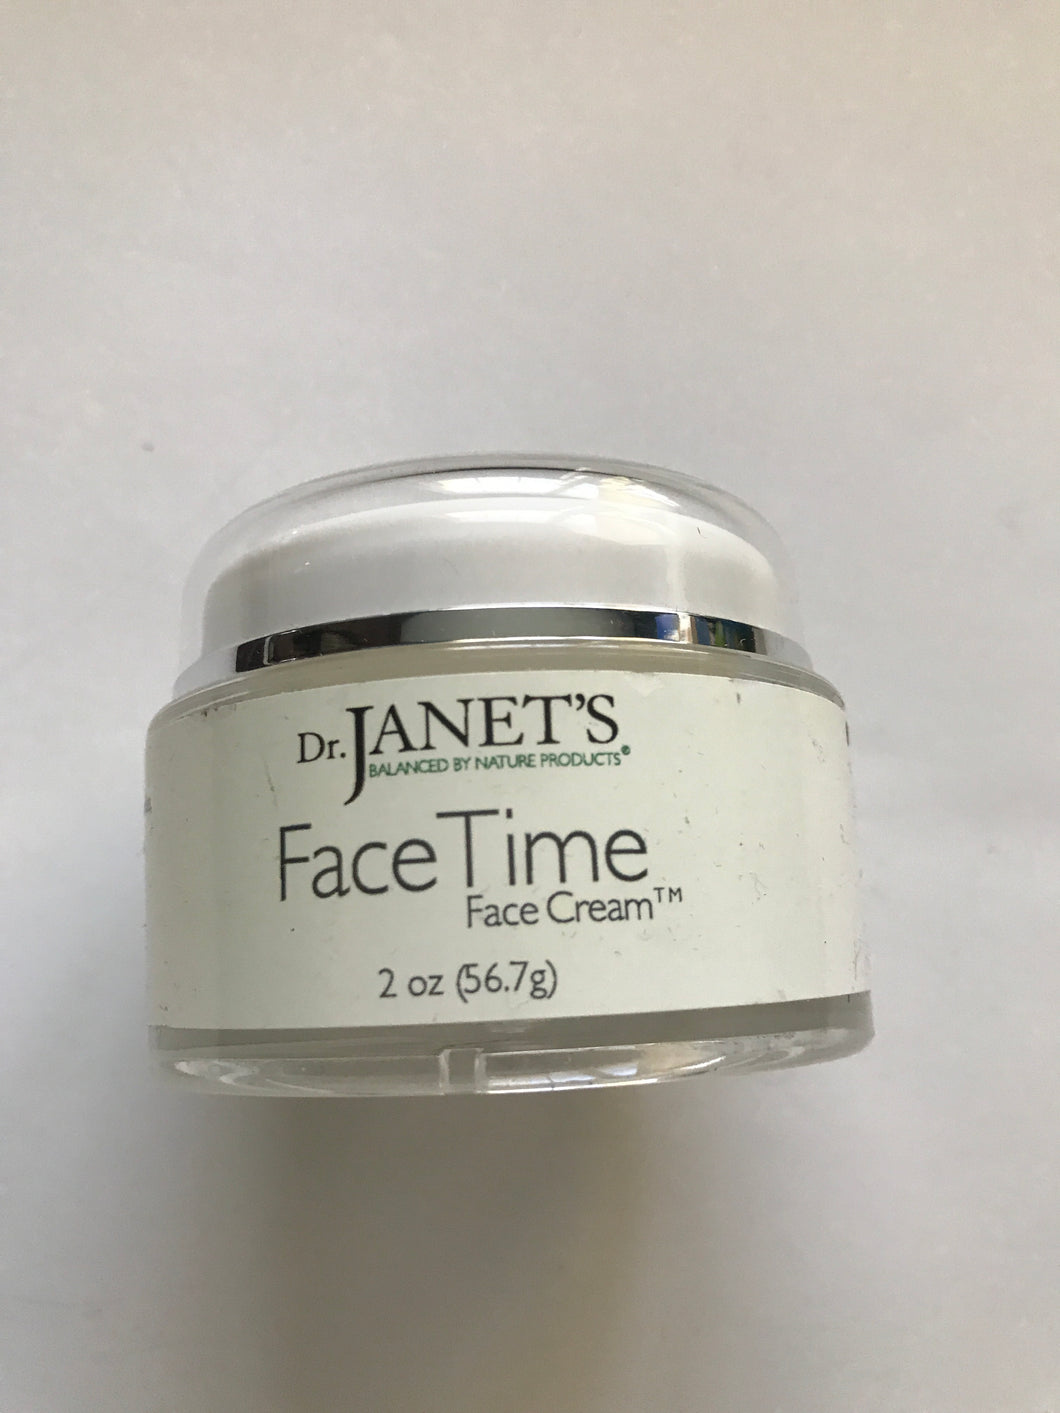 Dr Janets Face Time Face Cream